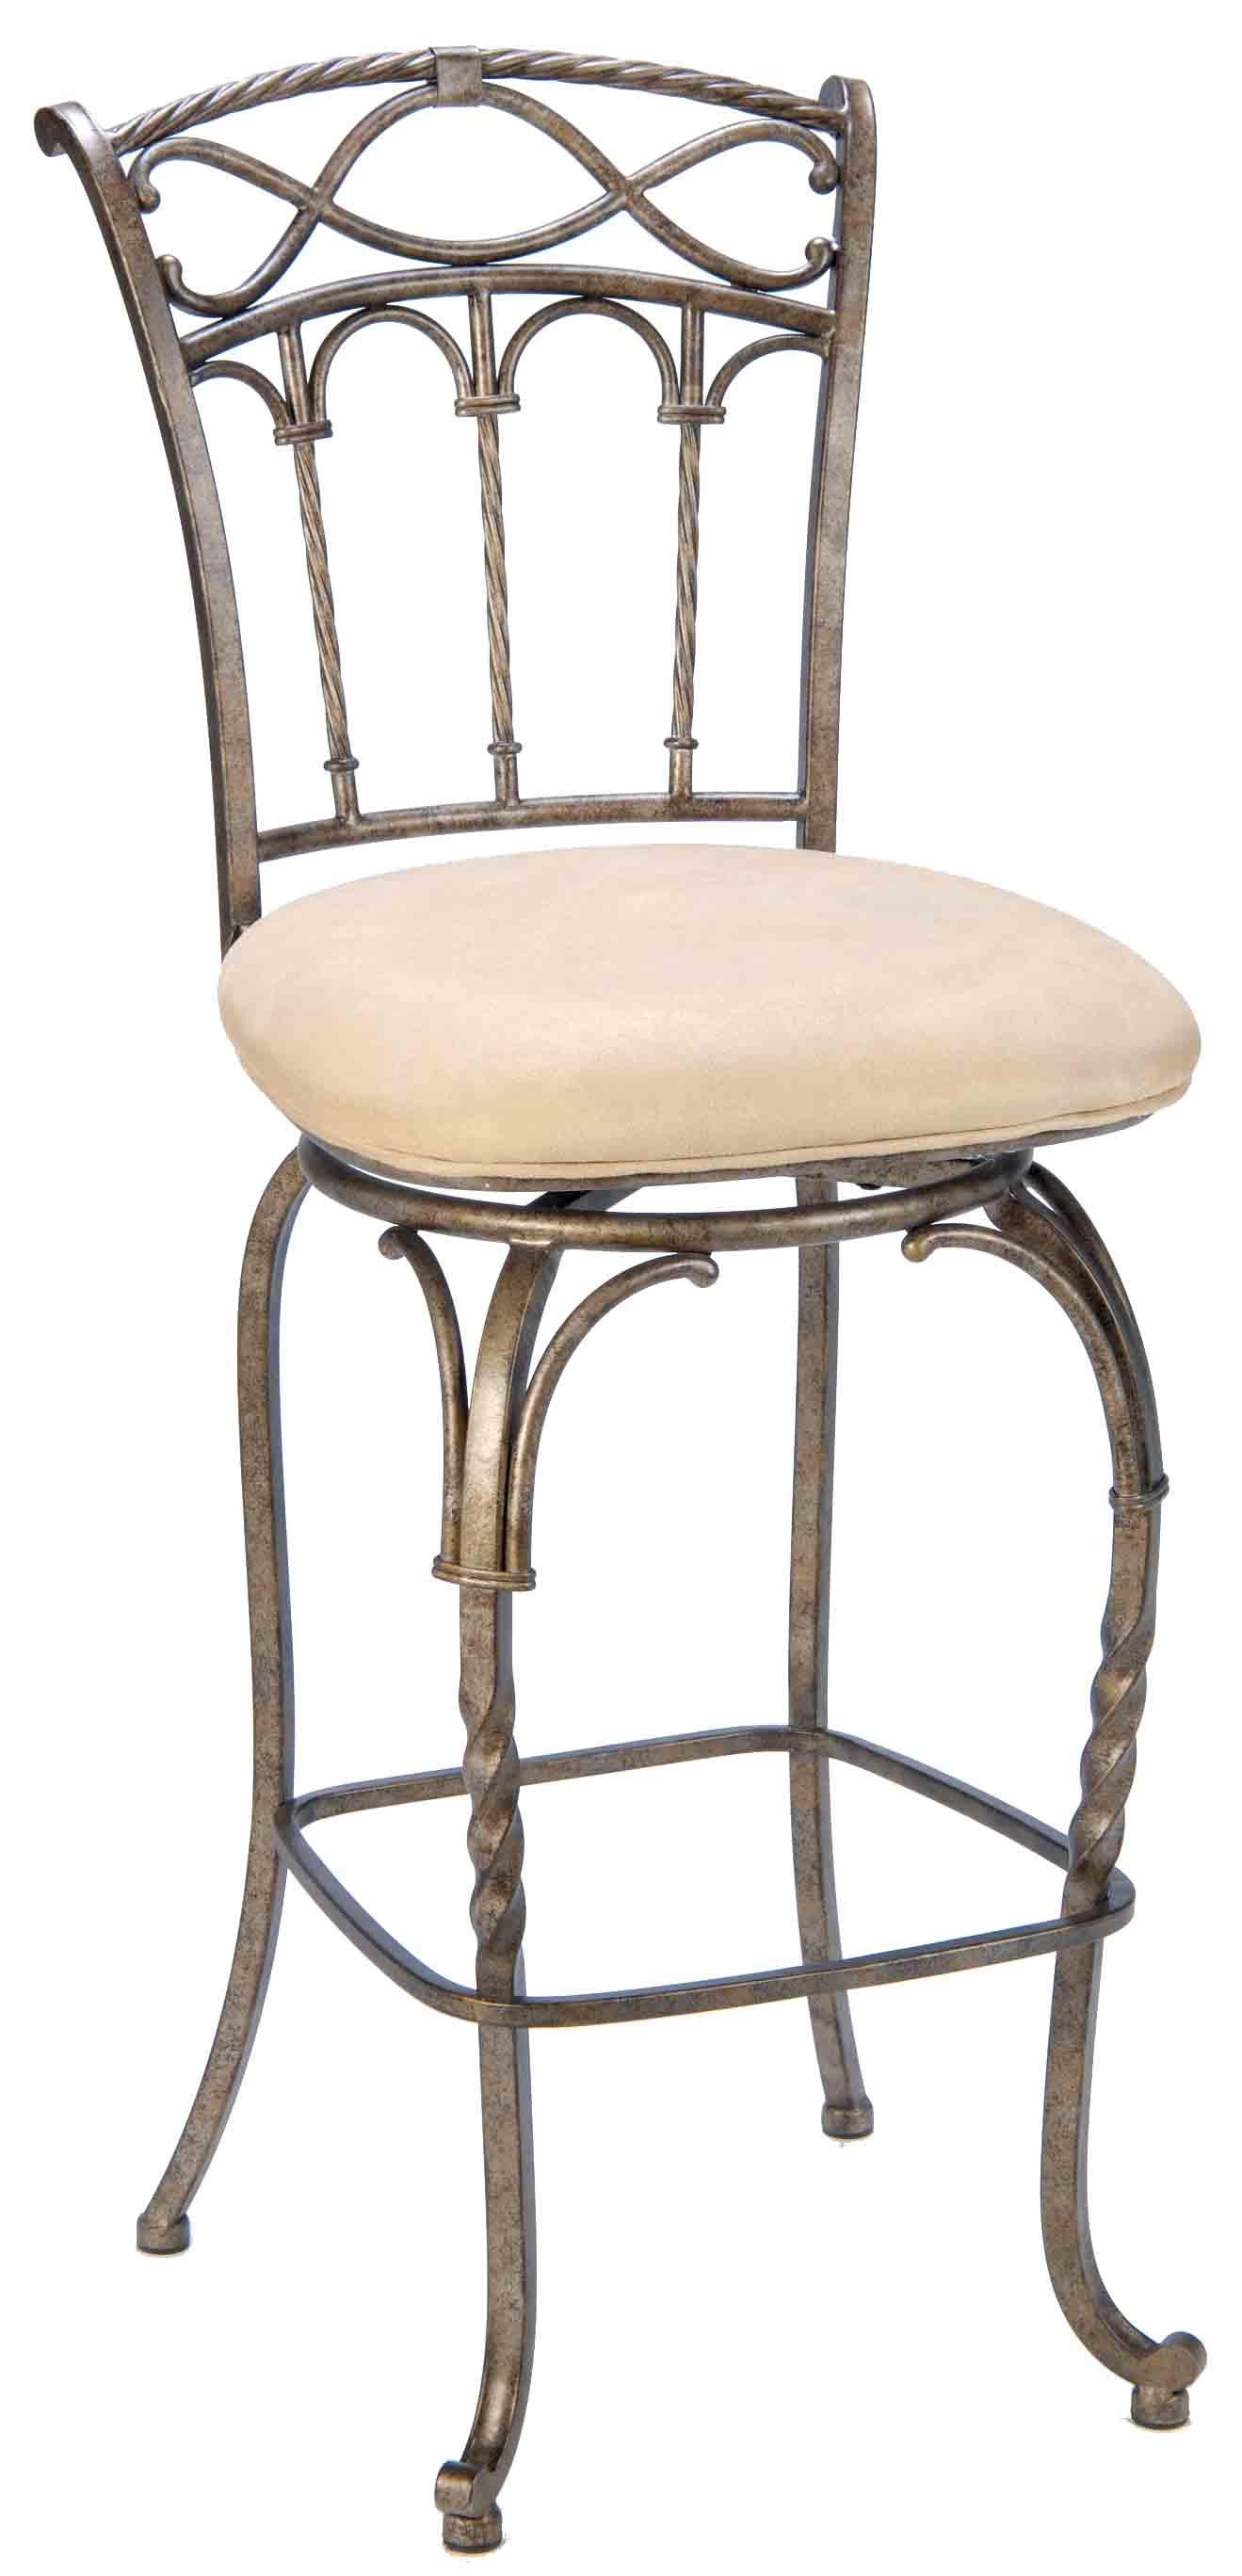 Hillsdale Metal Stools 4708 827 26 Quot Counter Height Kendall